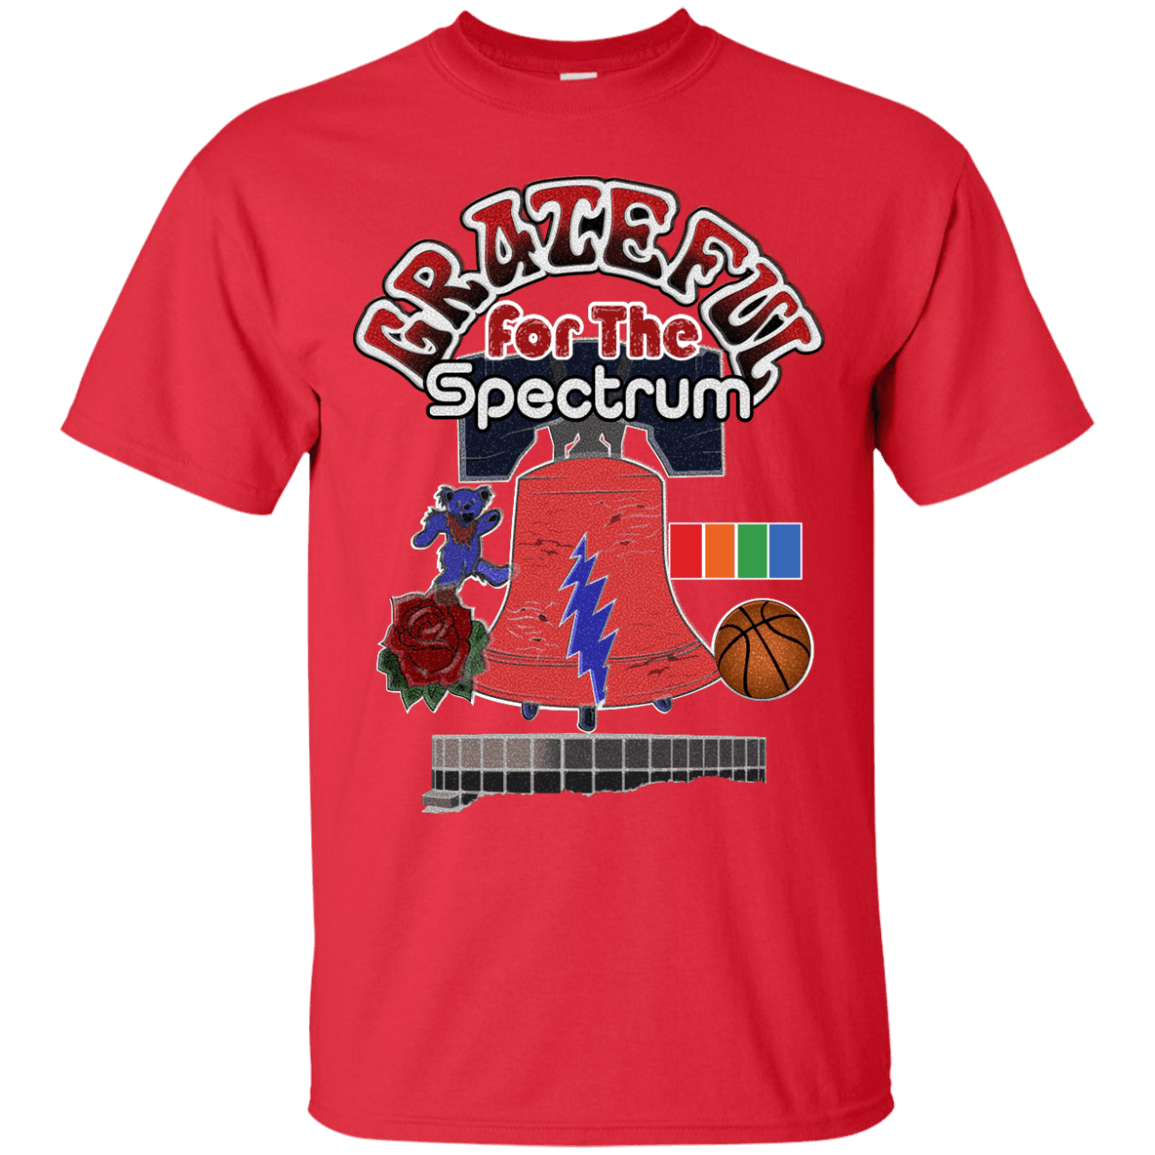 Grateful For The Spectrum Short Sleeve Tee